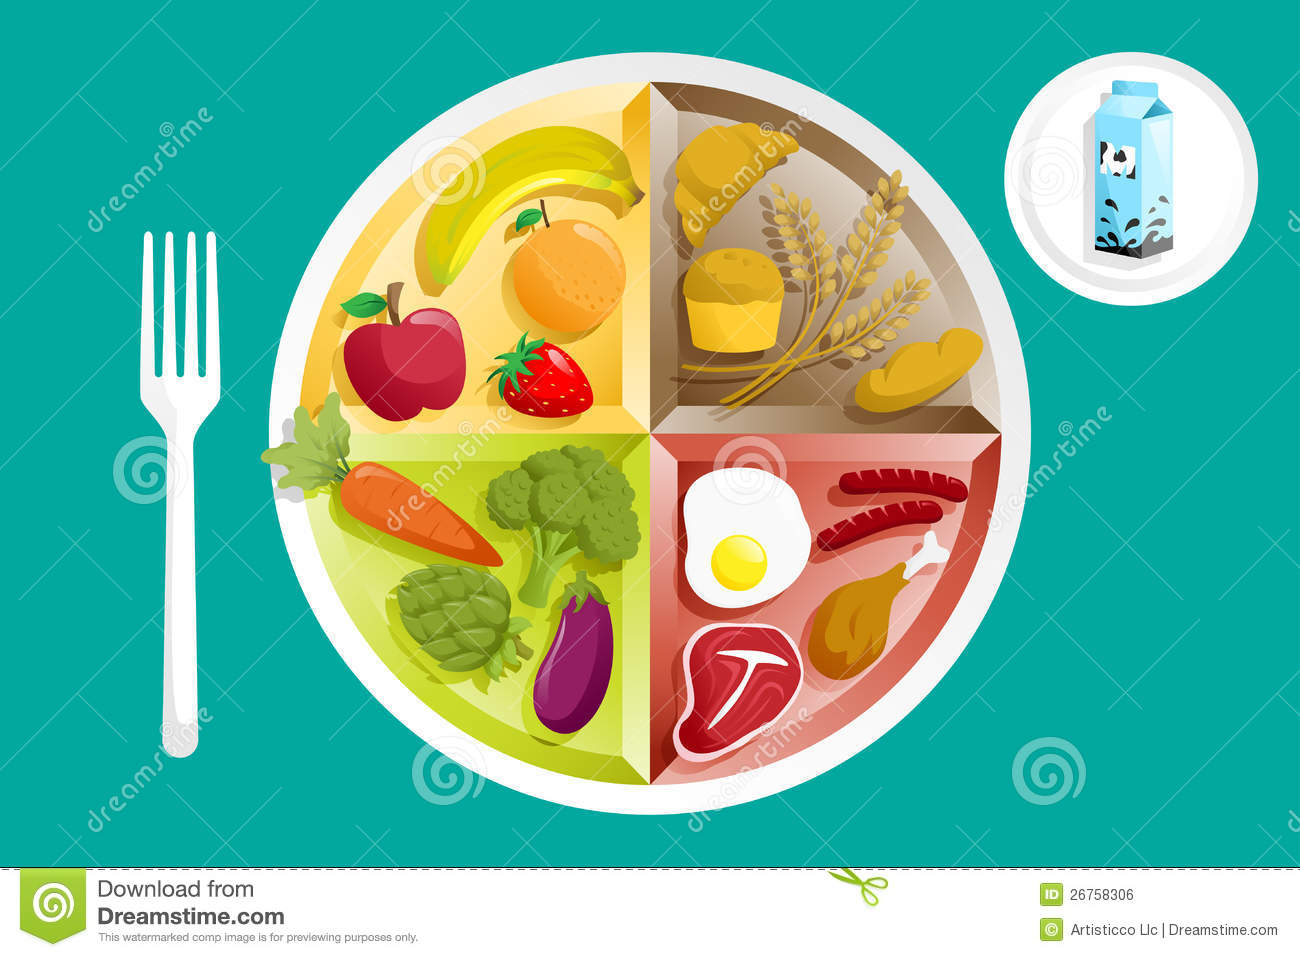 Food On A Plate Royalty Free Stock Image - Image: 26758306: https://www.dreamstime.com/royalty-free-stock-image-food-plate...